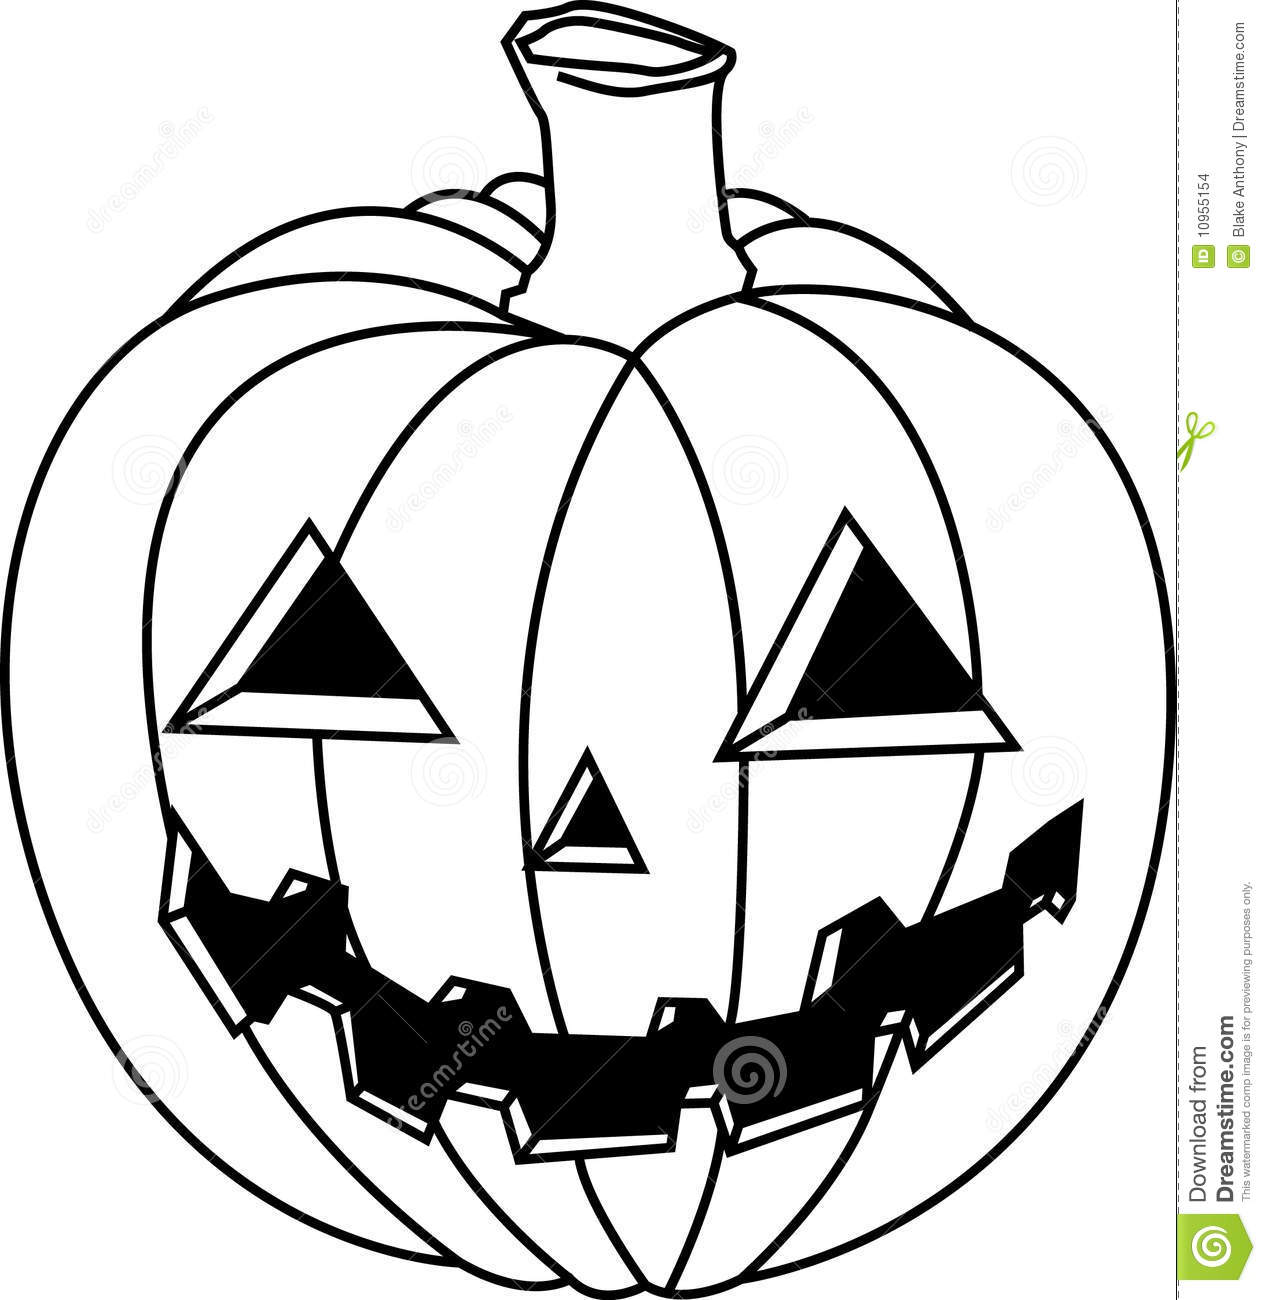 Jack or lanter clipart black and white image free library Jack O Lantern Clipart Black And White | Clipart Panda ... image free library